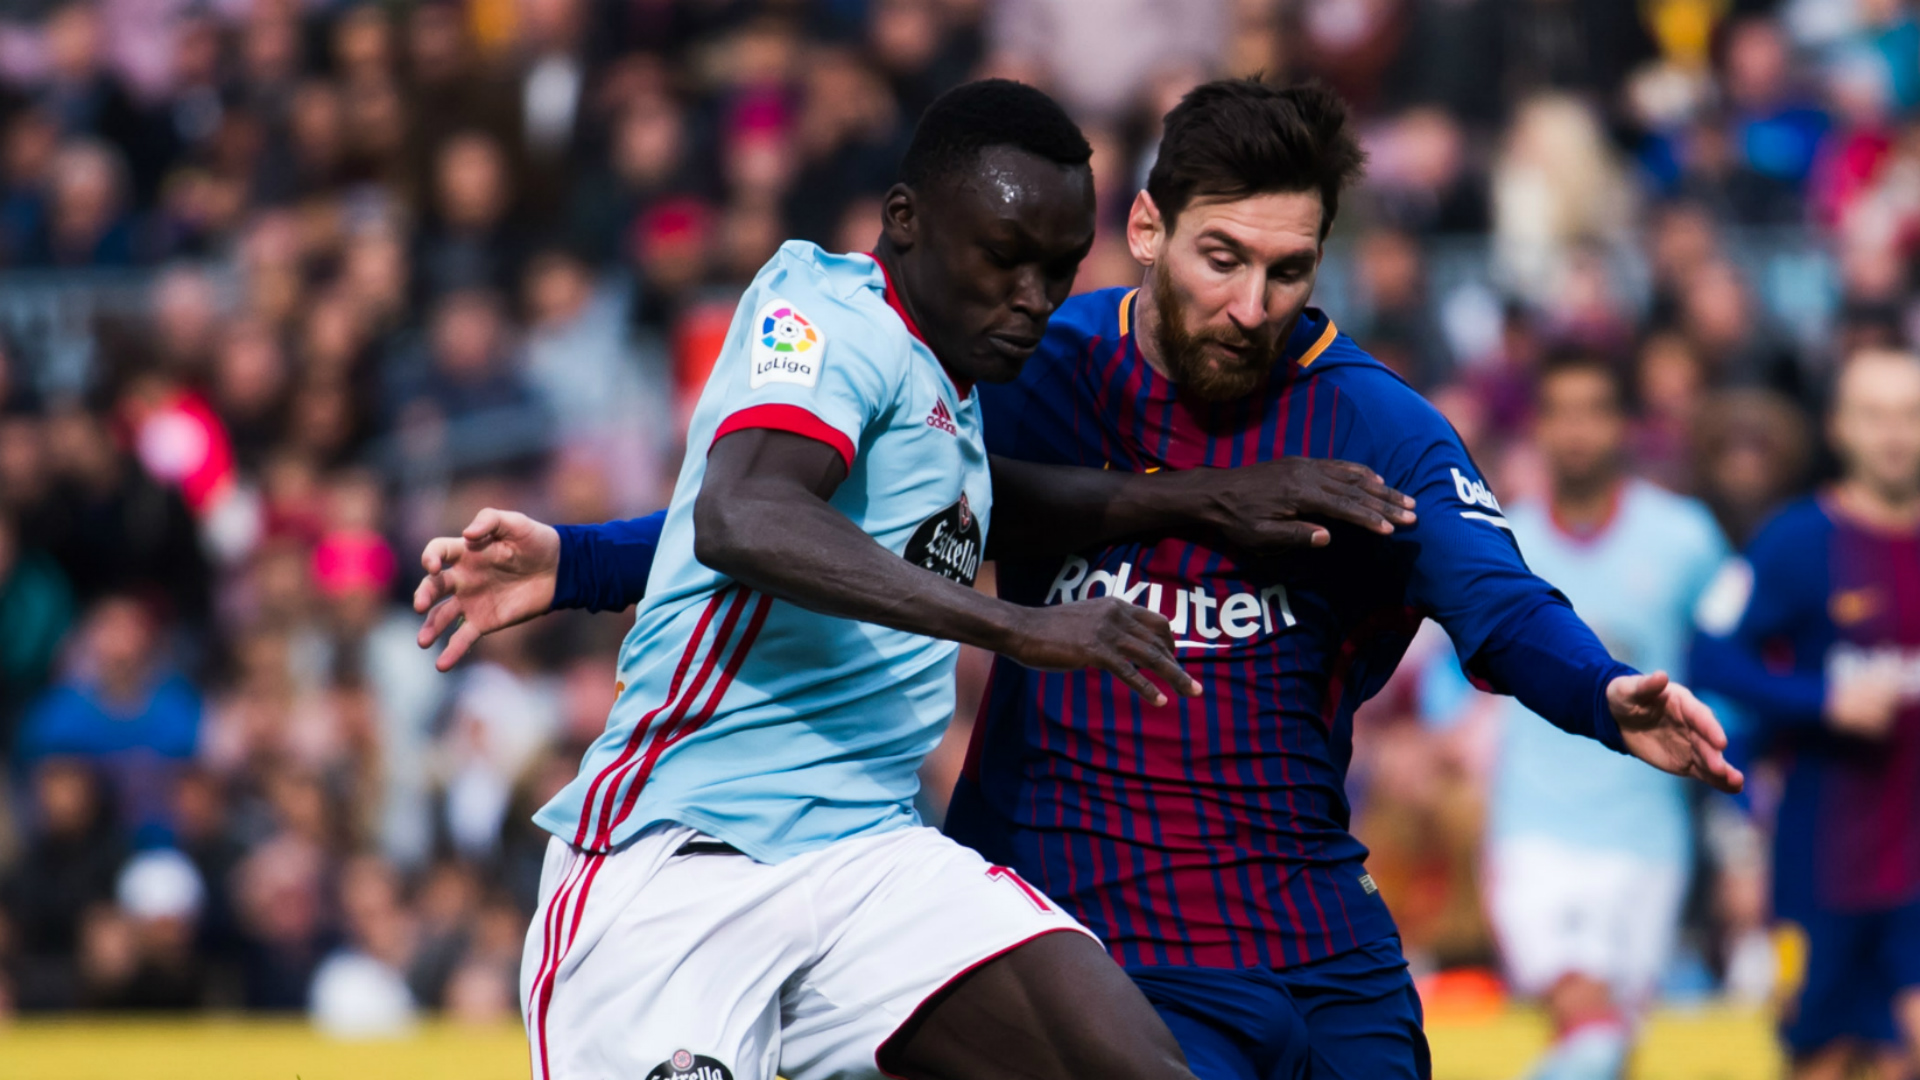 Barcelona face Espanyol in King's Cup quarters, Real play Leganes